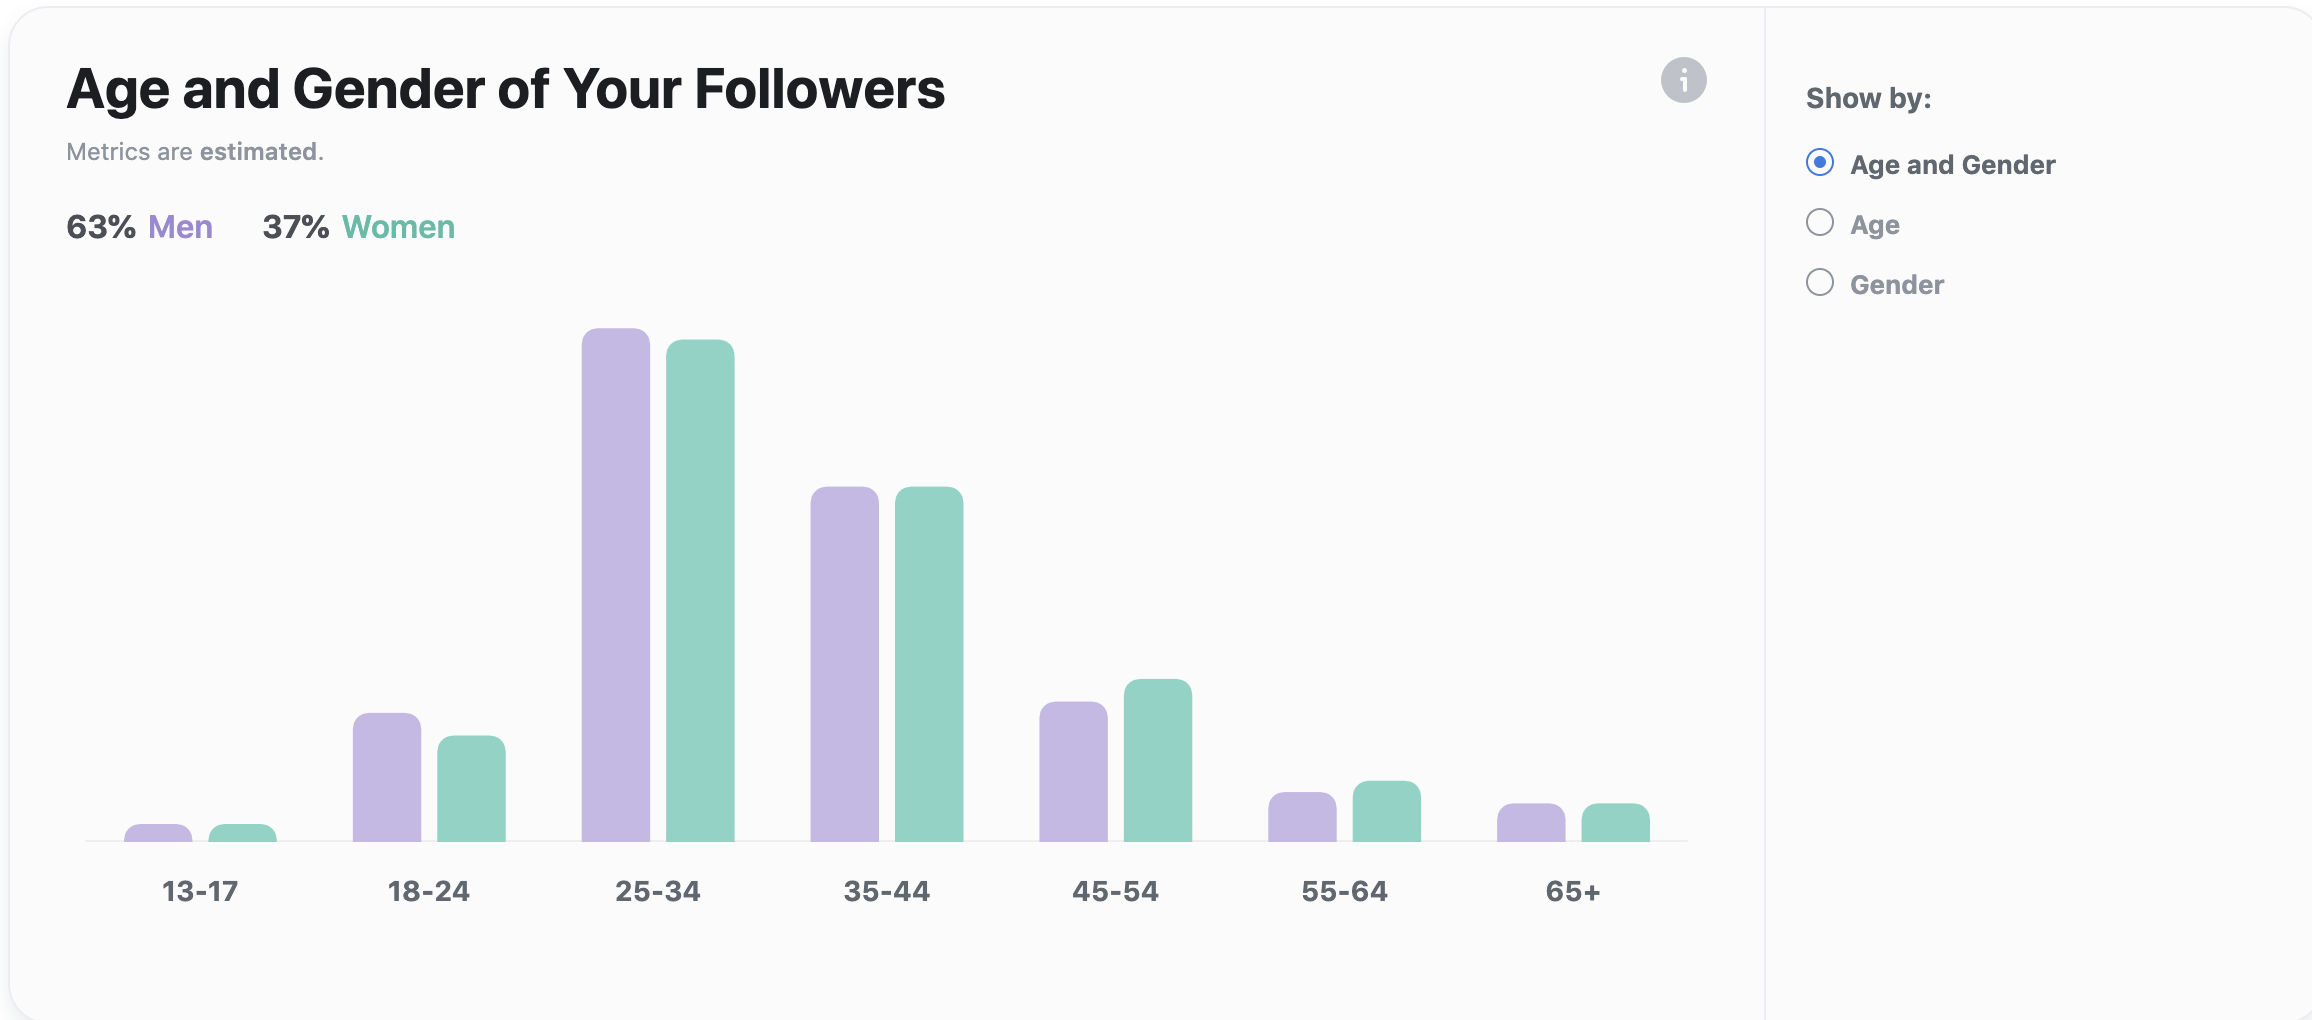 age and gender of your followers